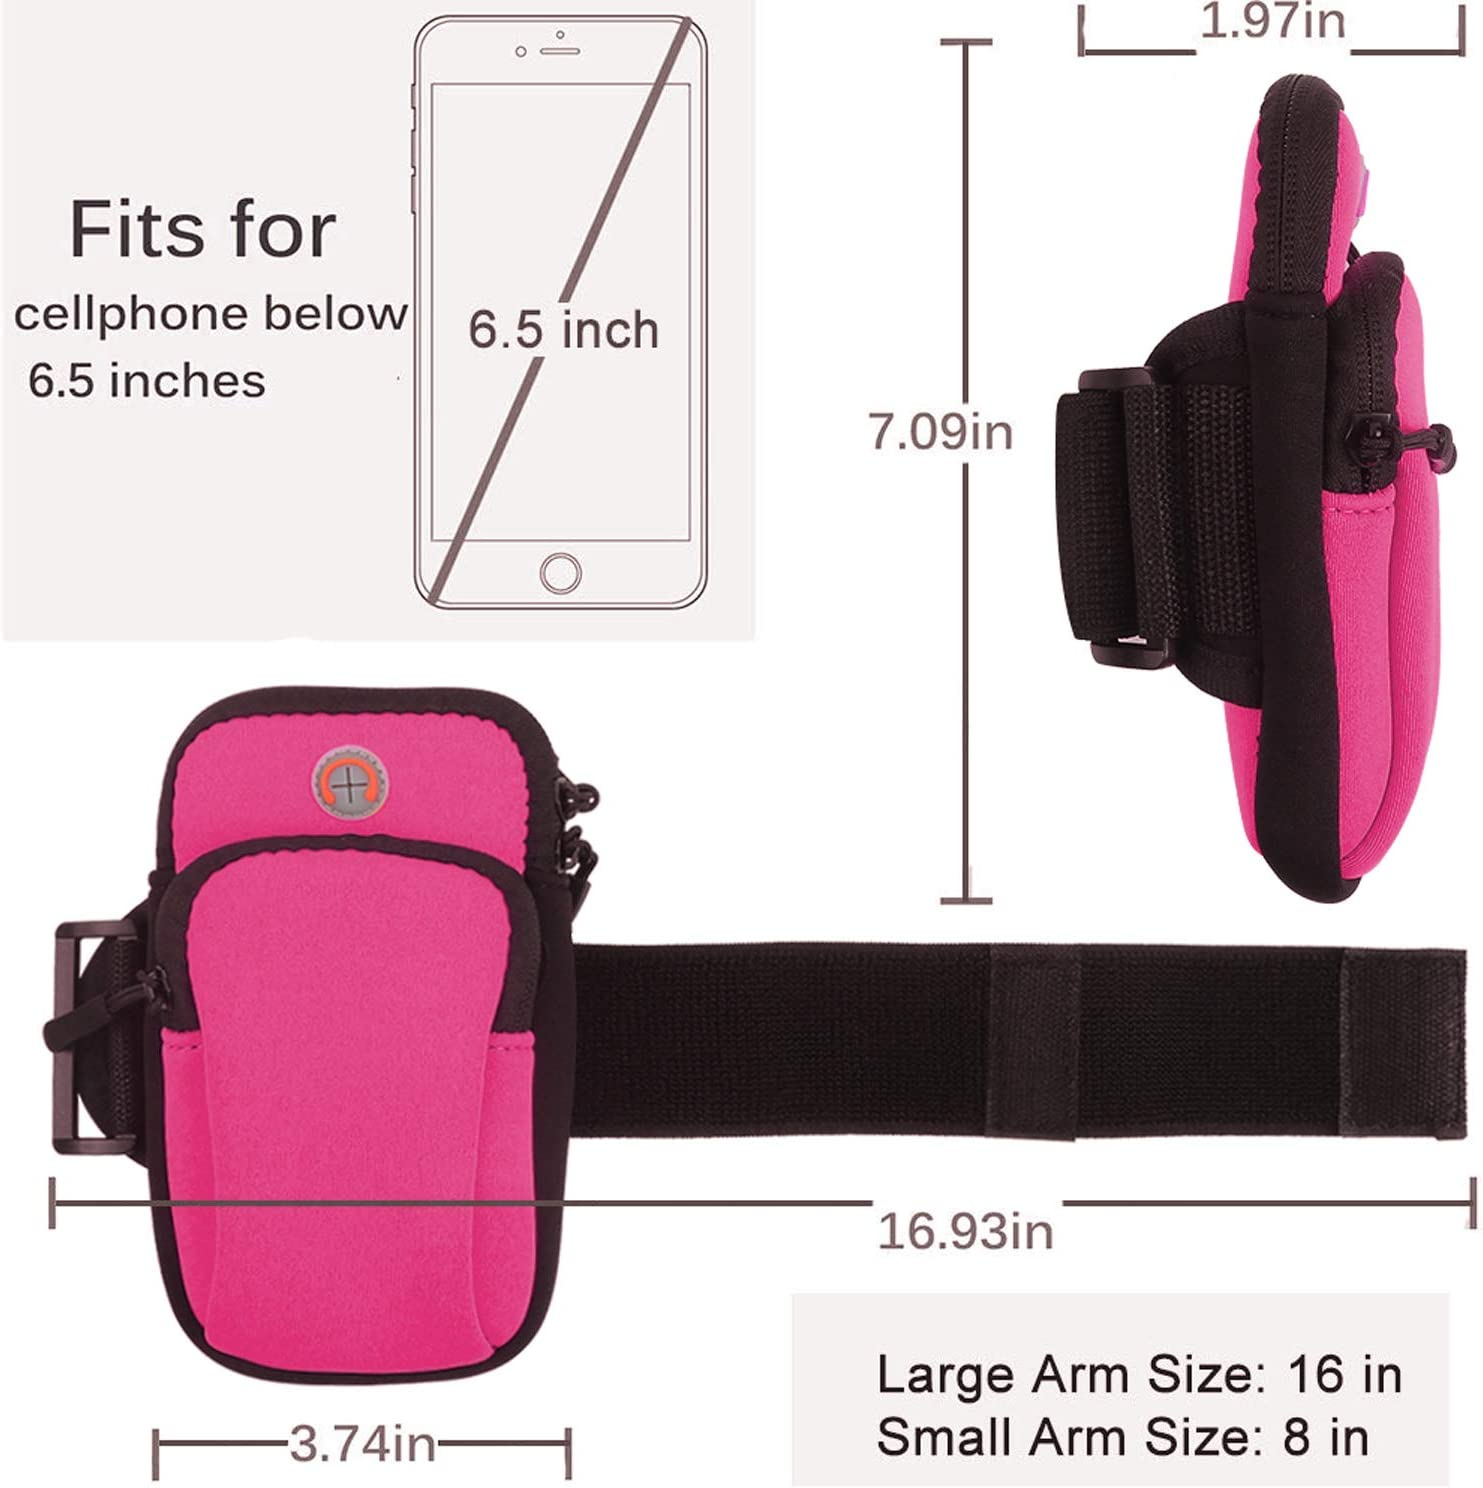 Vetoo Running Phone Armband Skin-Friendly Sweat-proof Multifunctional Outdoor Sports Gym Armband for Mobile phone up to 6.2 with Headphone Slot and Double Pockets